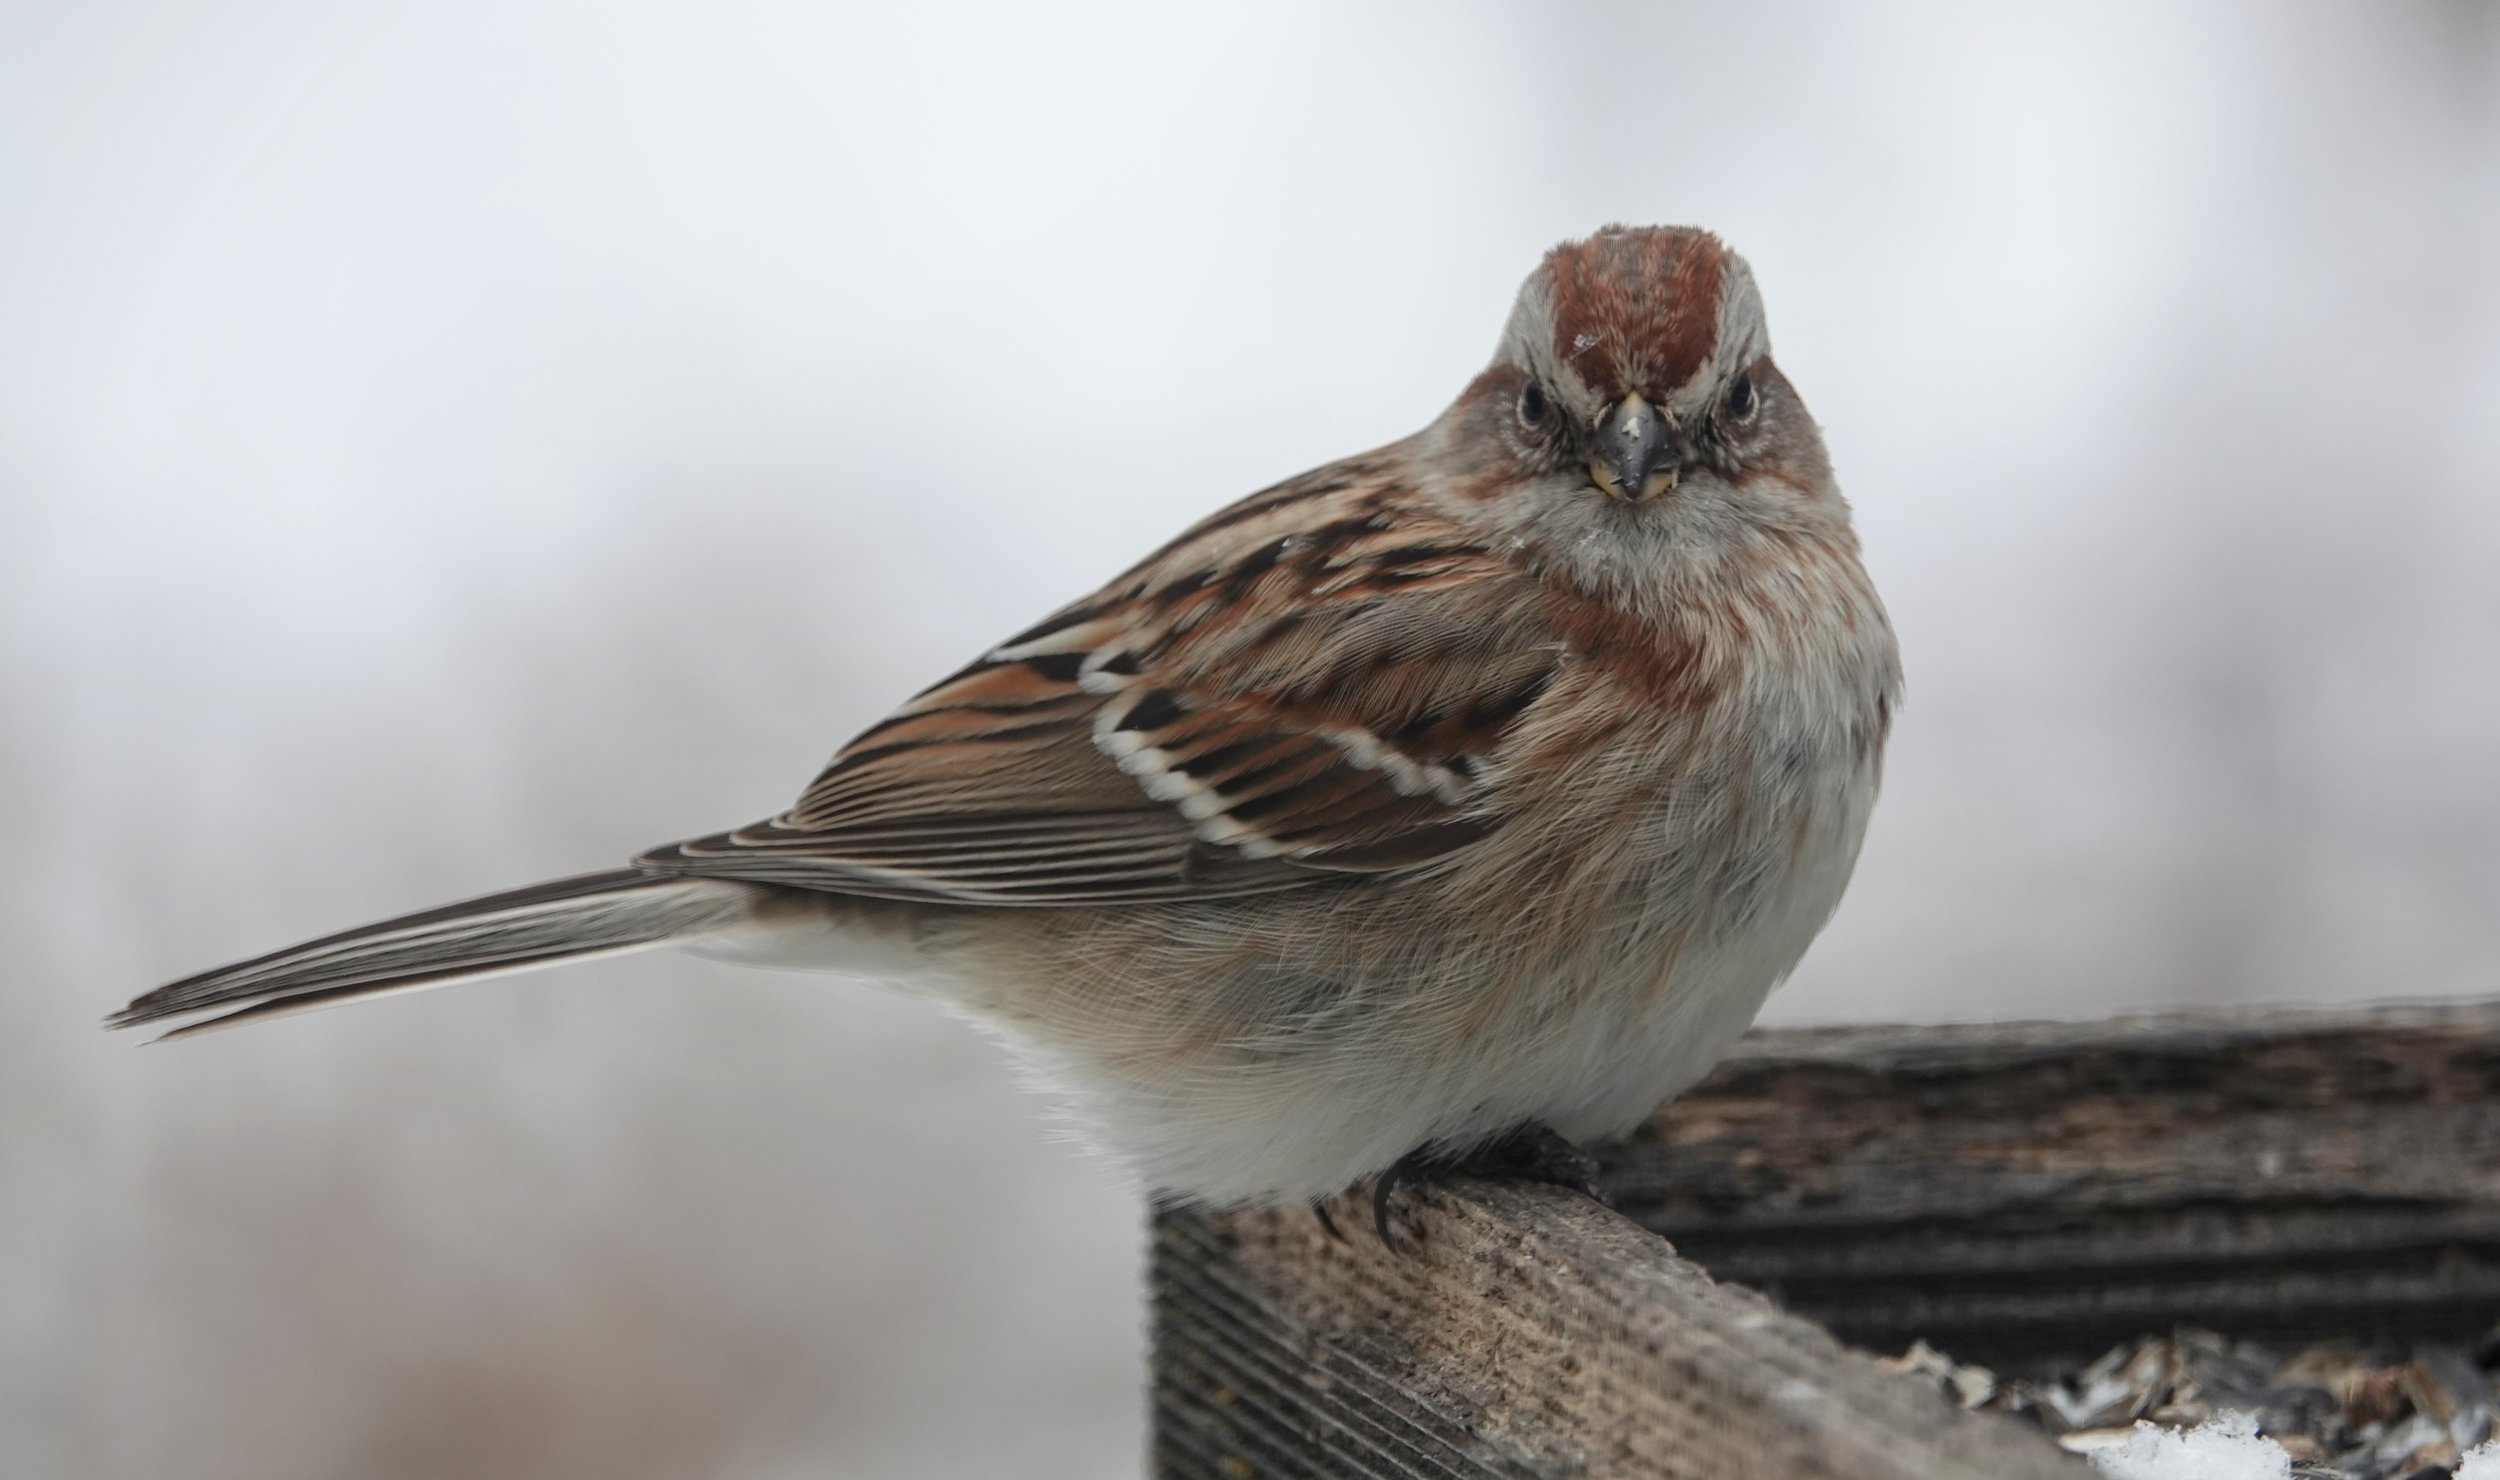 The American tree sparrow nests on or near the ground.